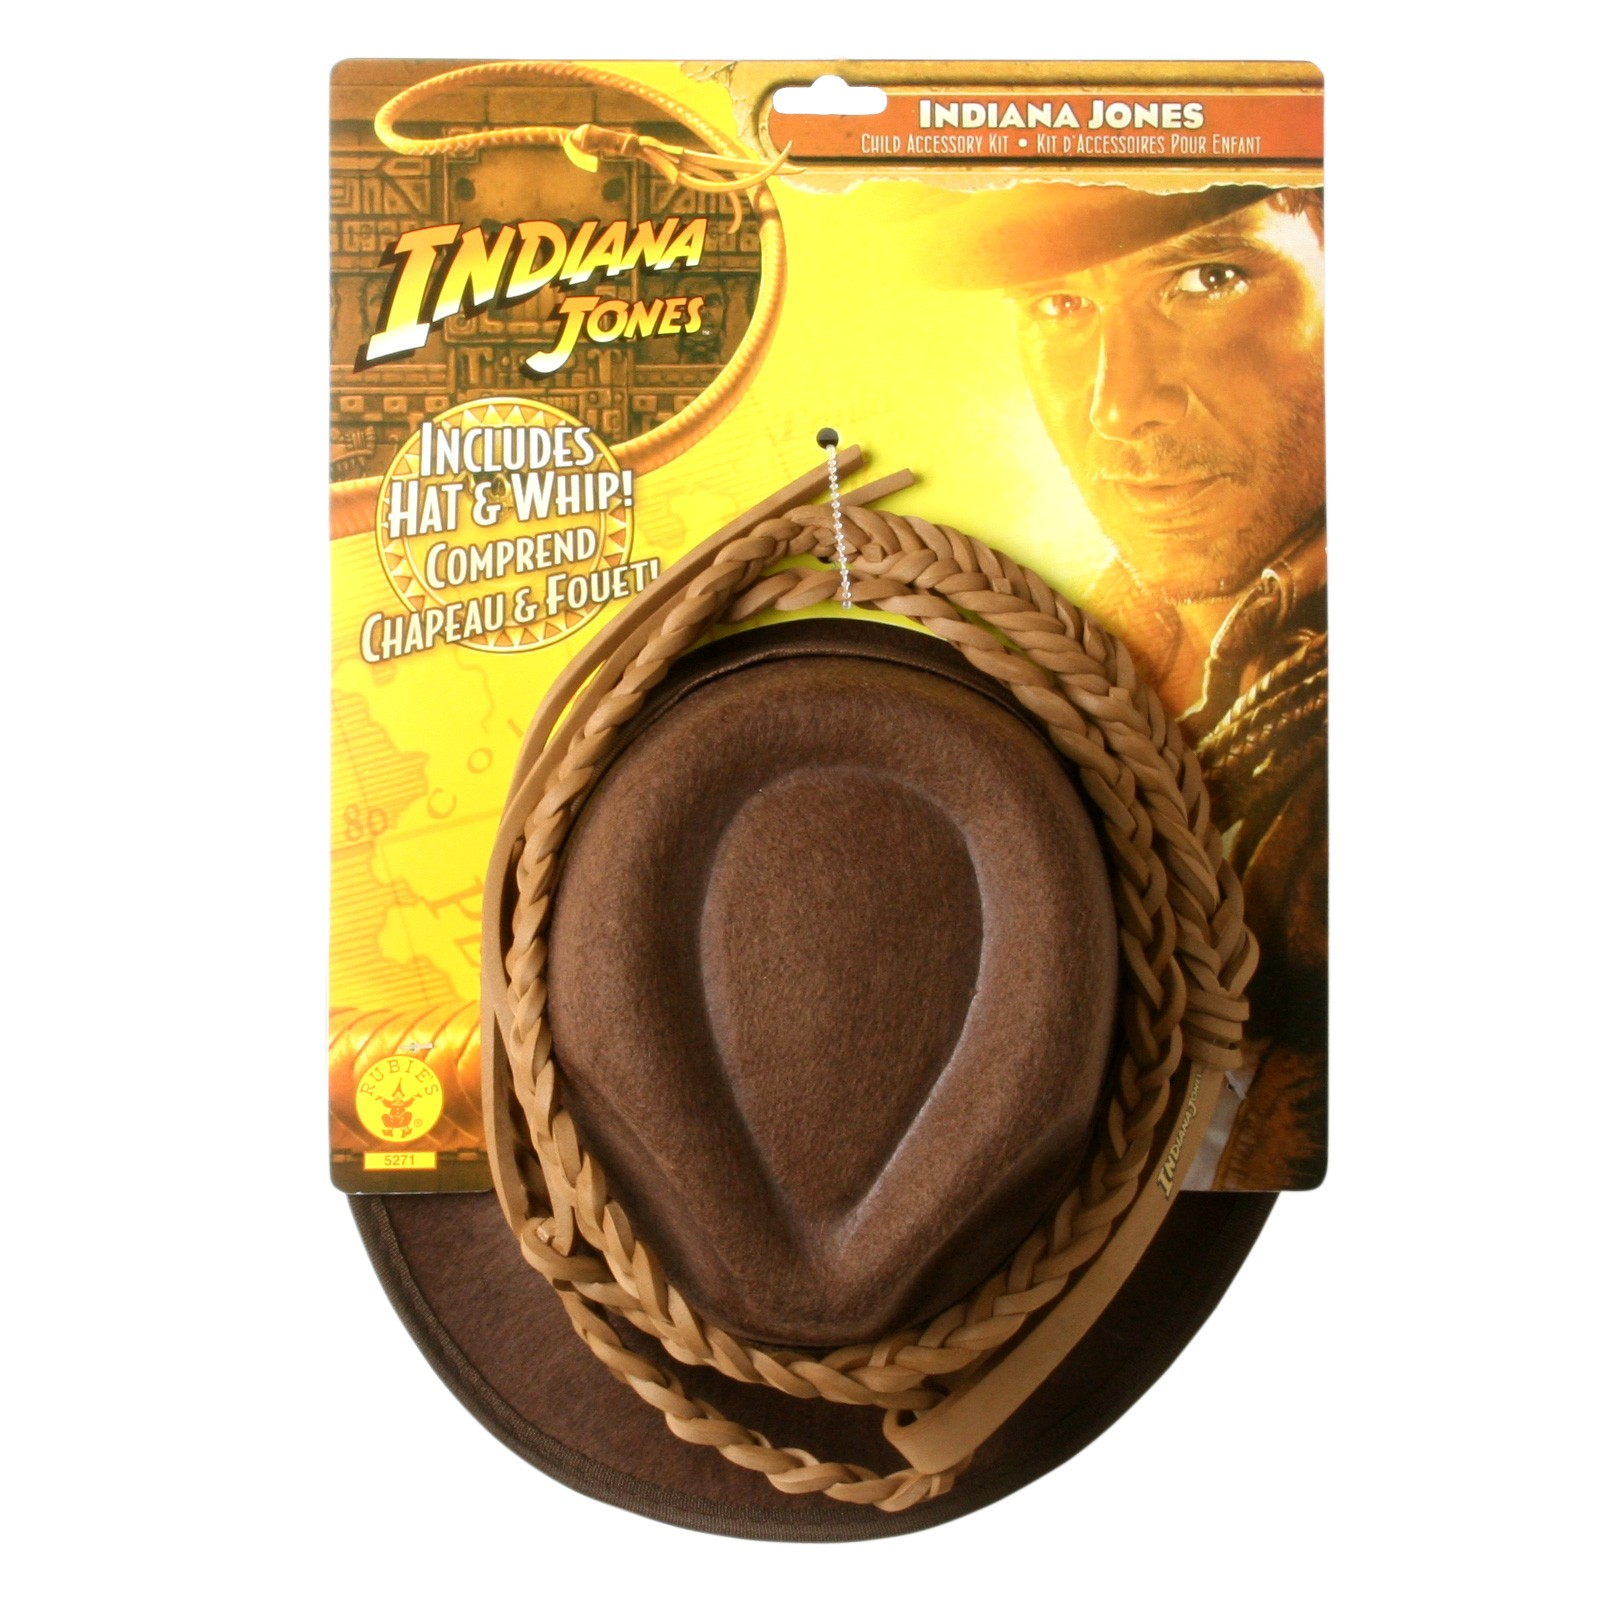 Indiana Jones - Indiana Jones Accessory Kit Child